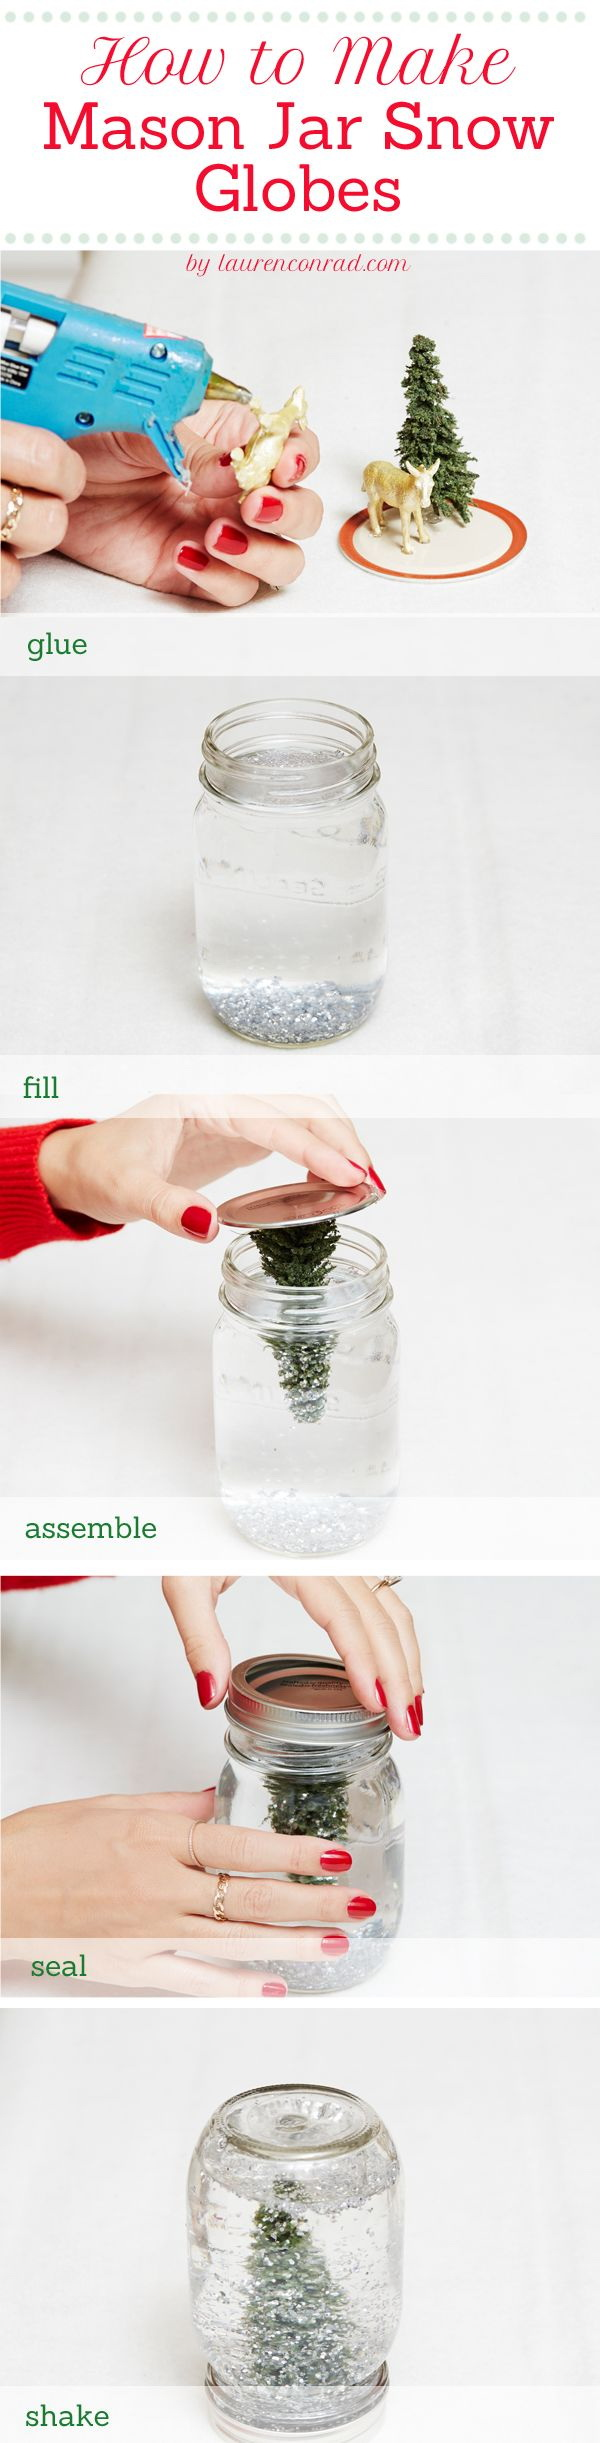 DIY Mason Jar Snow Globes: Make some snow globes for your holiday decor or use it as the holiday gift!